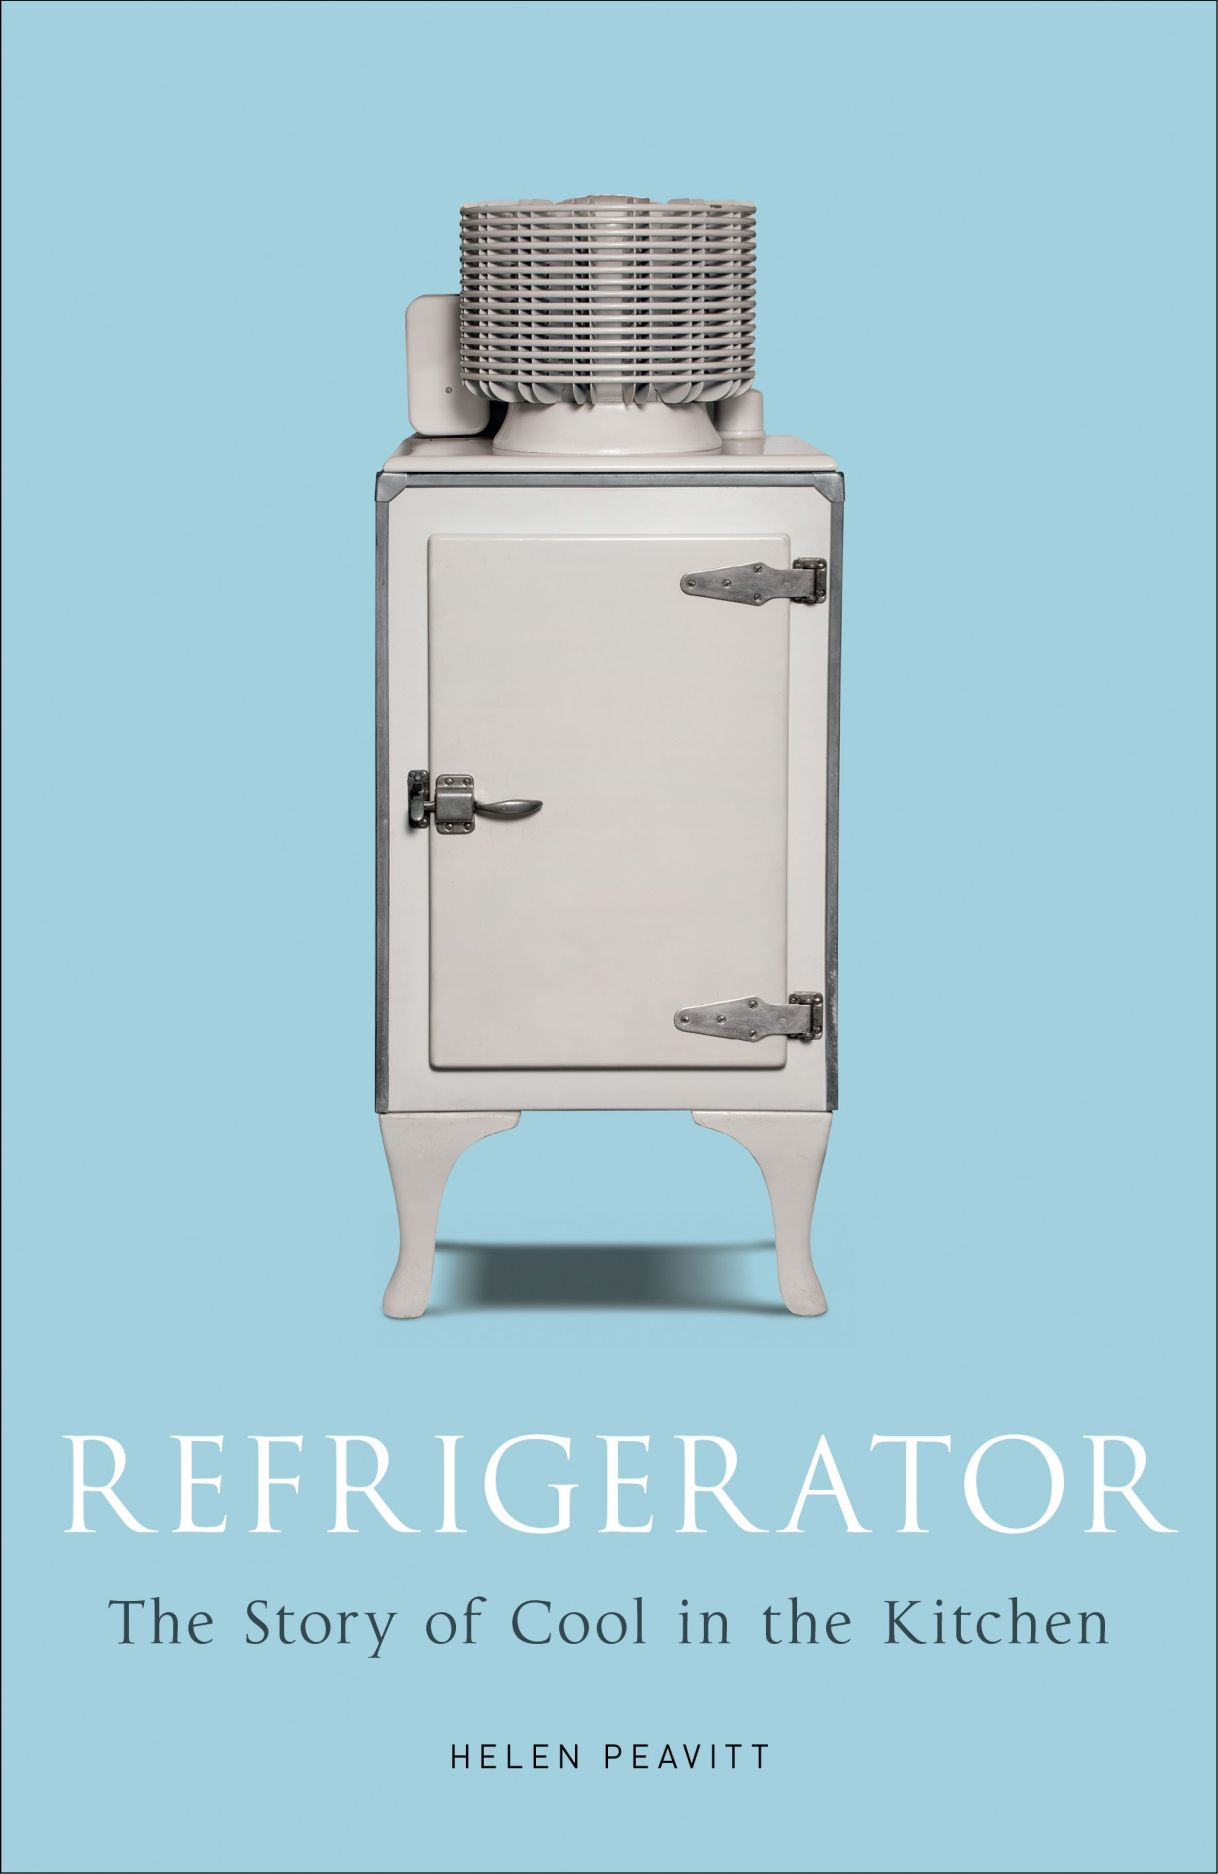 Refrigerator: The Story of Cool in the Kitchen